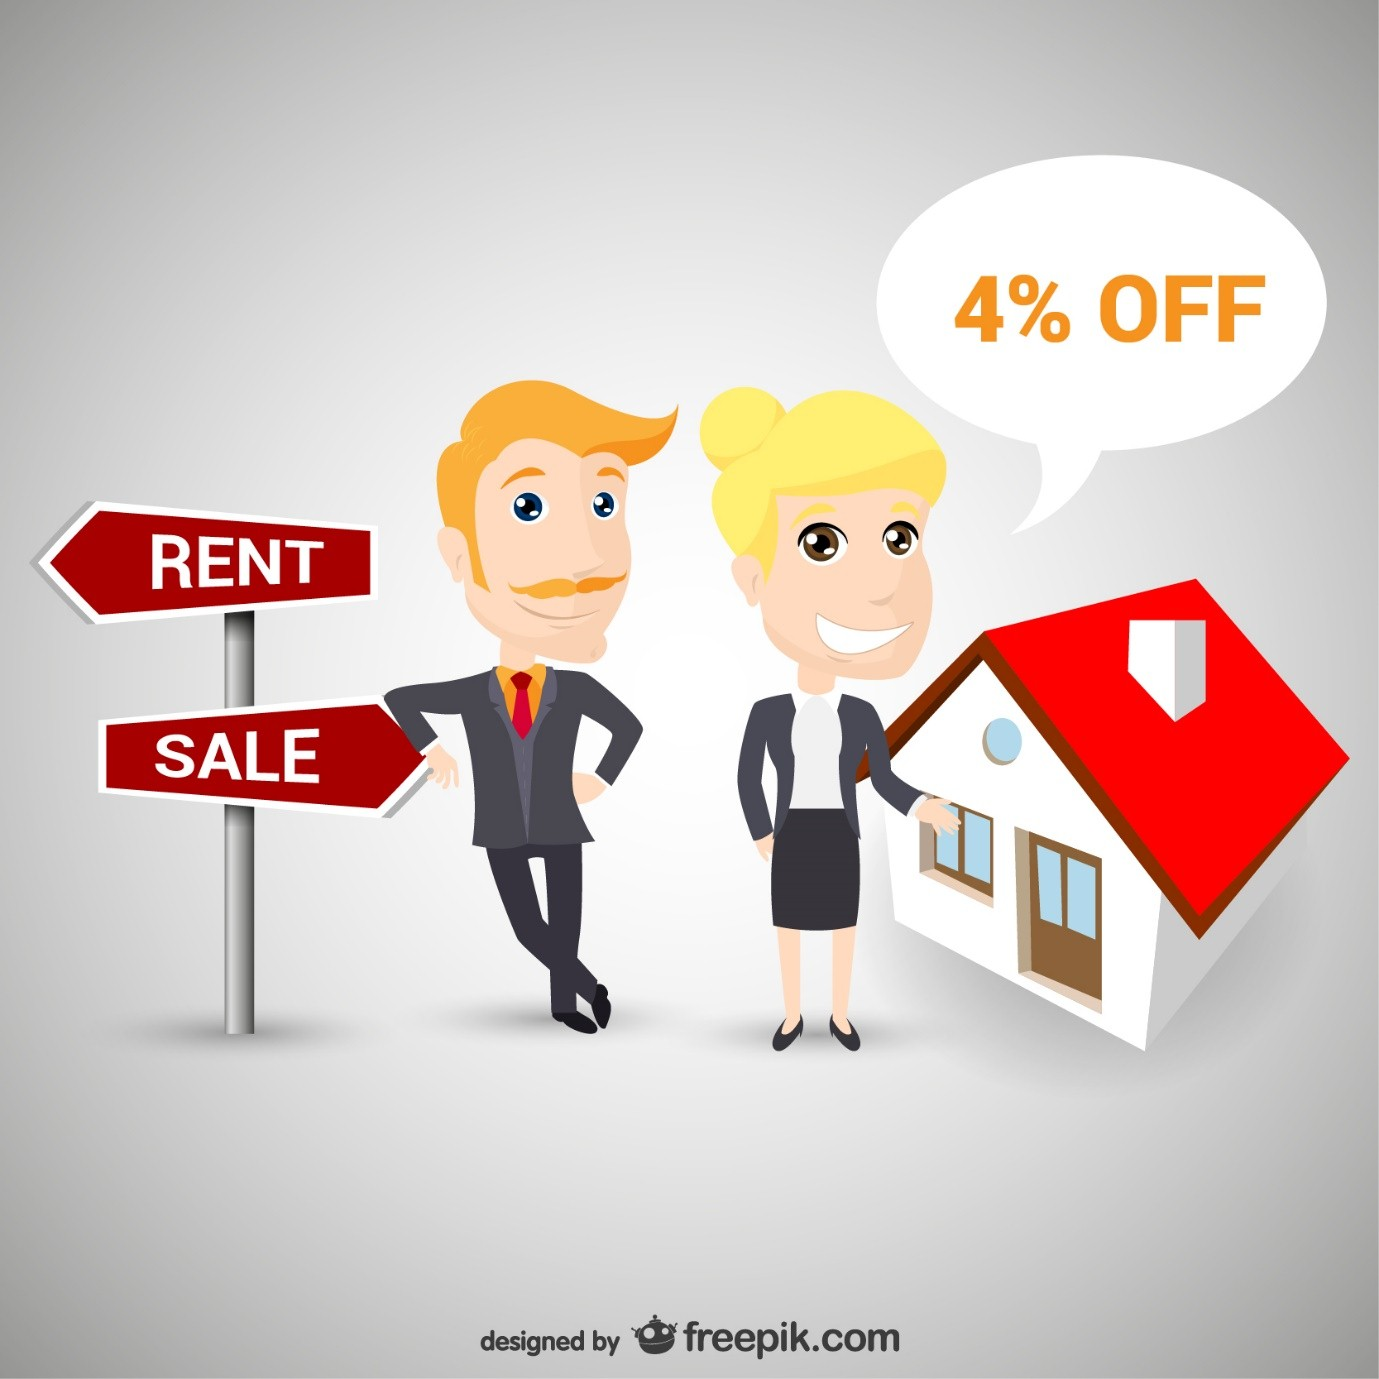 Renting vs Buying: The Pros and cons